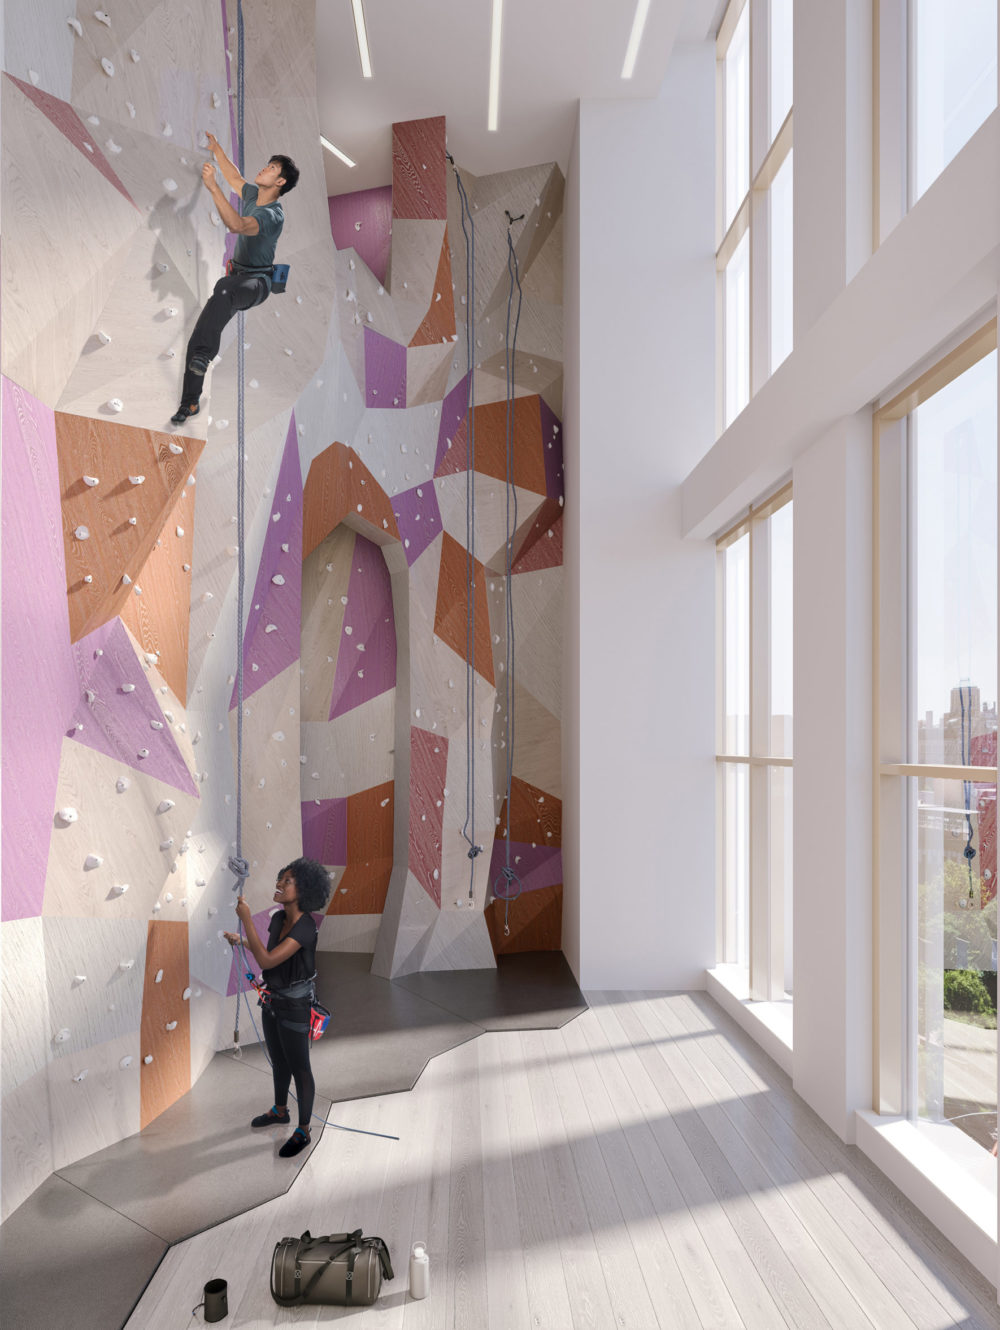 Interior view of Brooklyn Point residence rock climbing wall with window view. Has pink and orange rockwall.